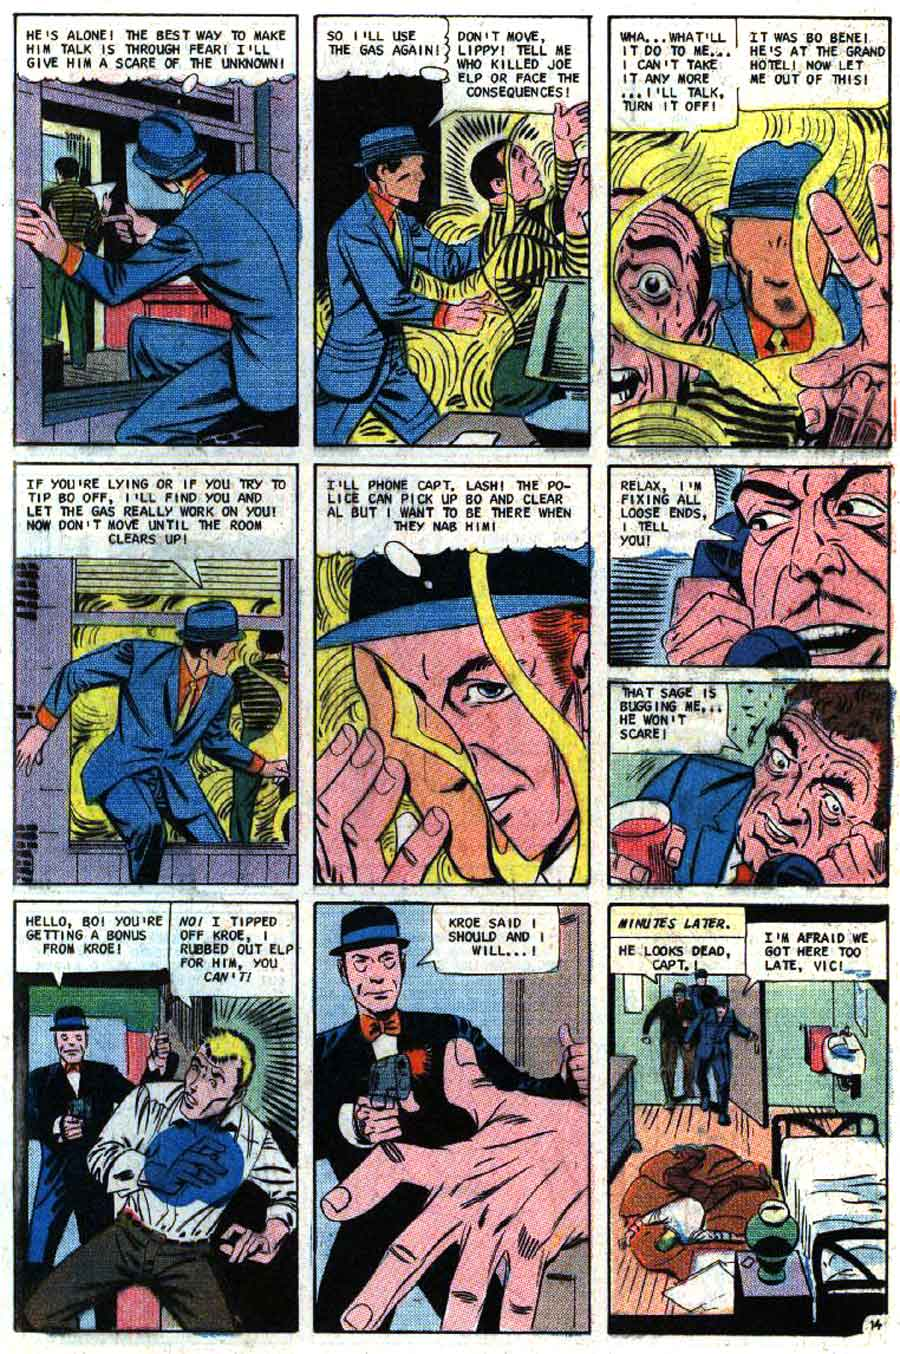 Mysterious Suspense v1 #1 charlton question silver age 1960s comic book page art by Steve Ditko